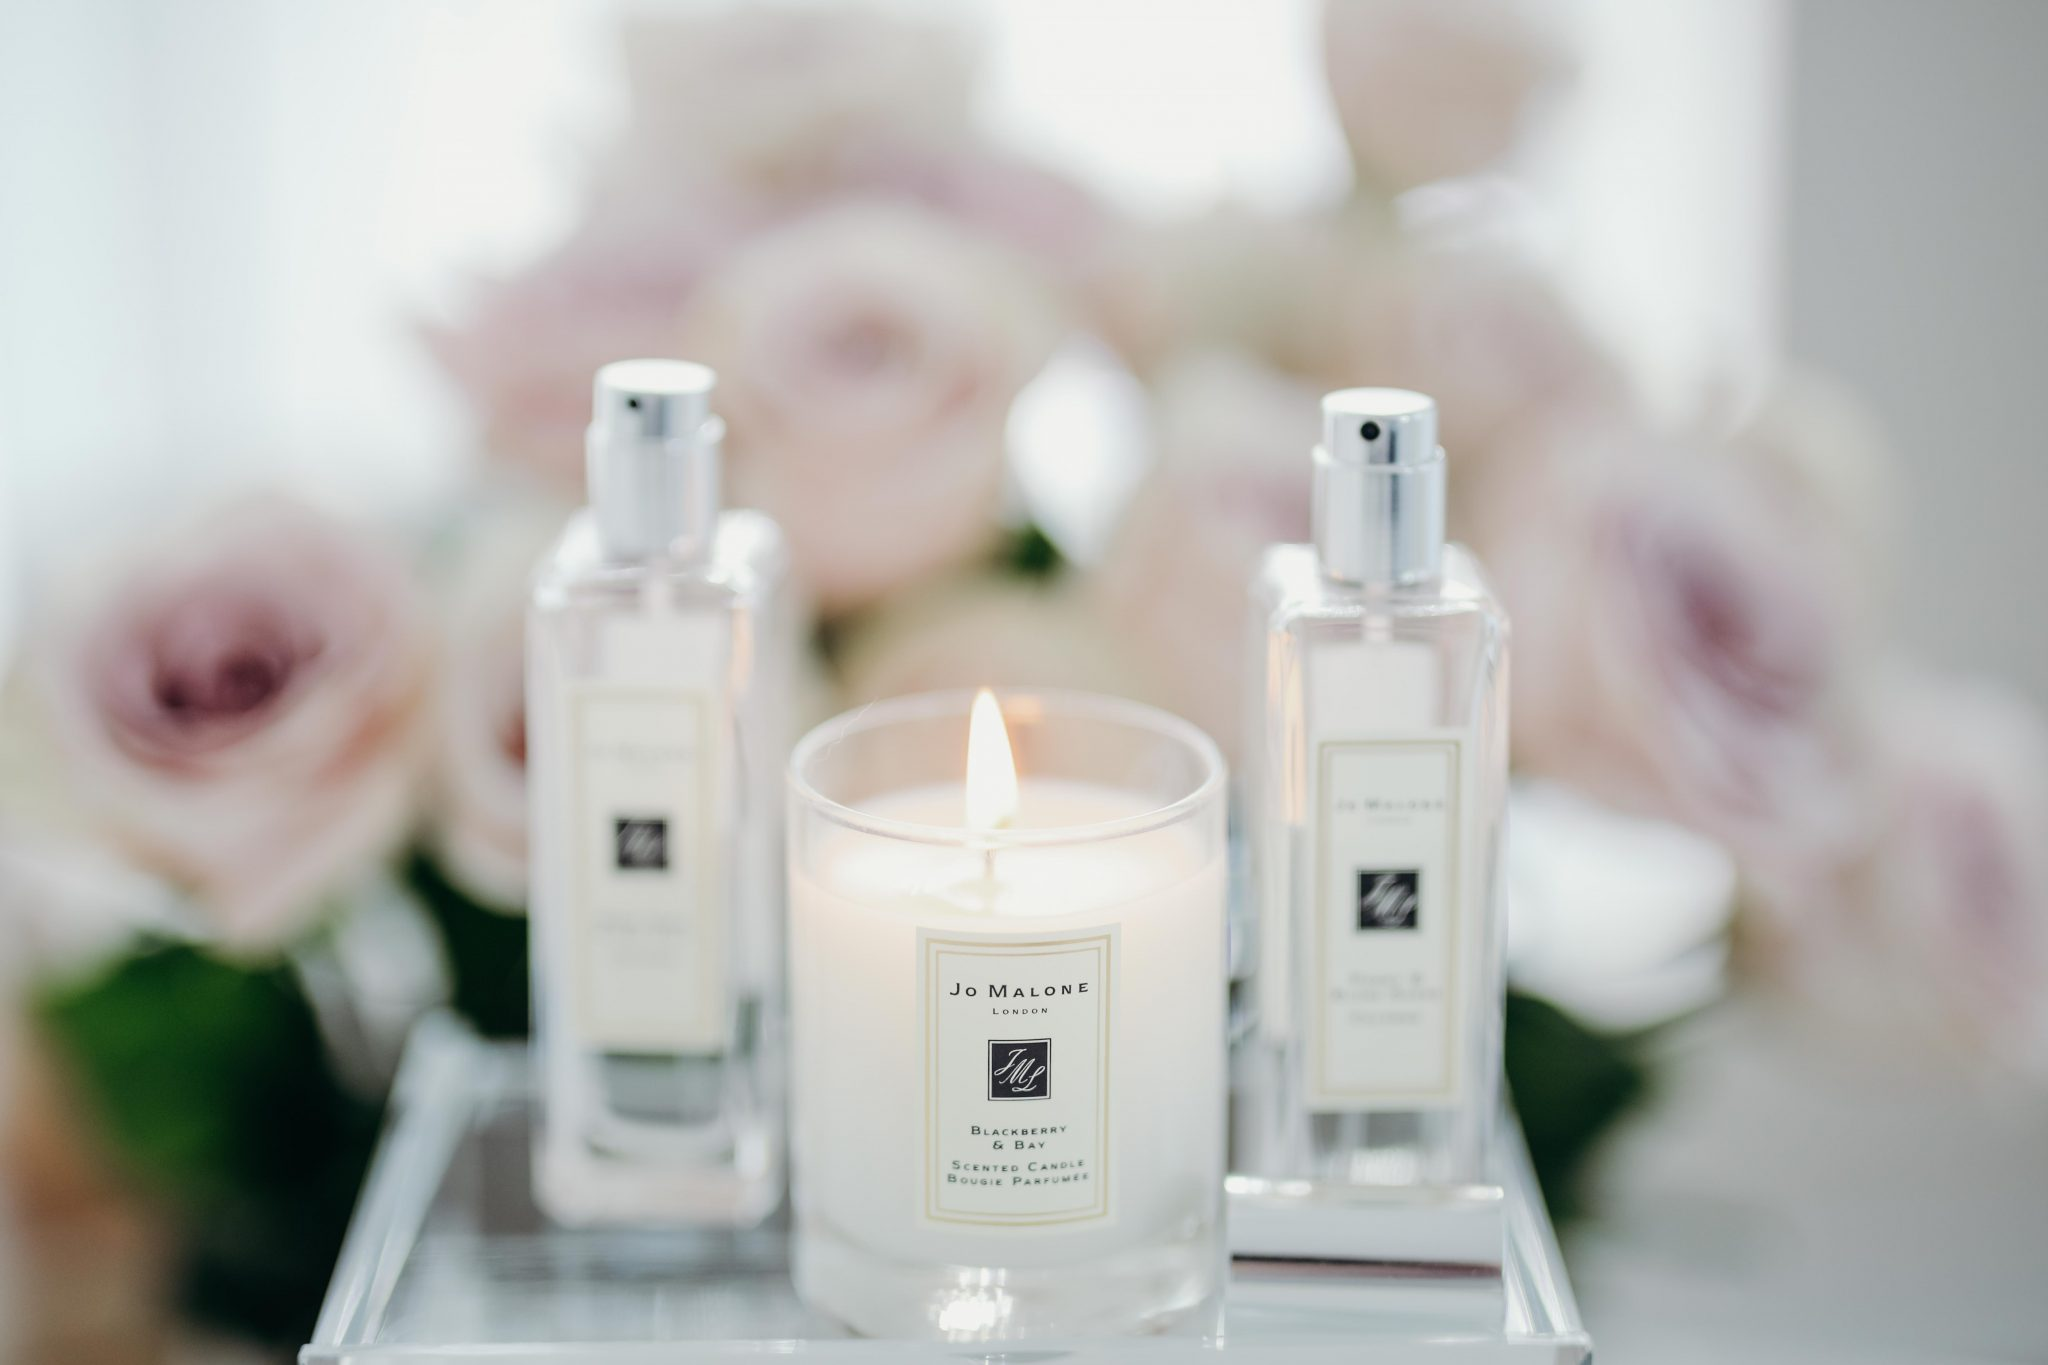 favorite jo malone london scents